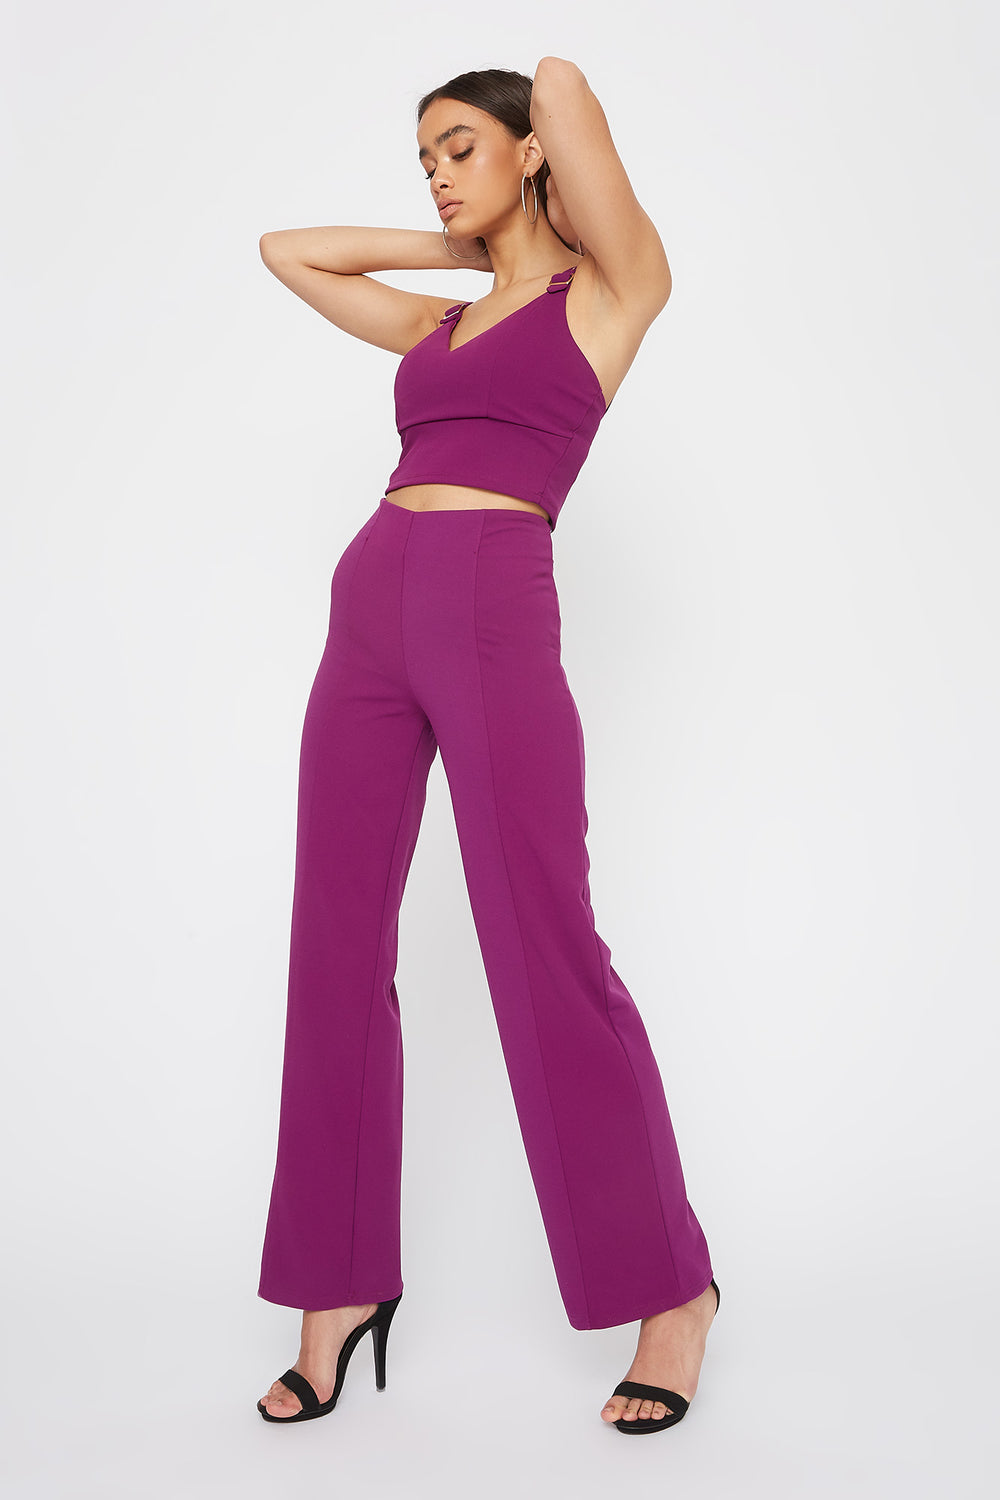 Belt Straps Cropped Tank Purple